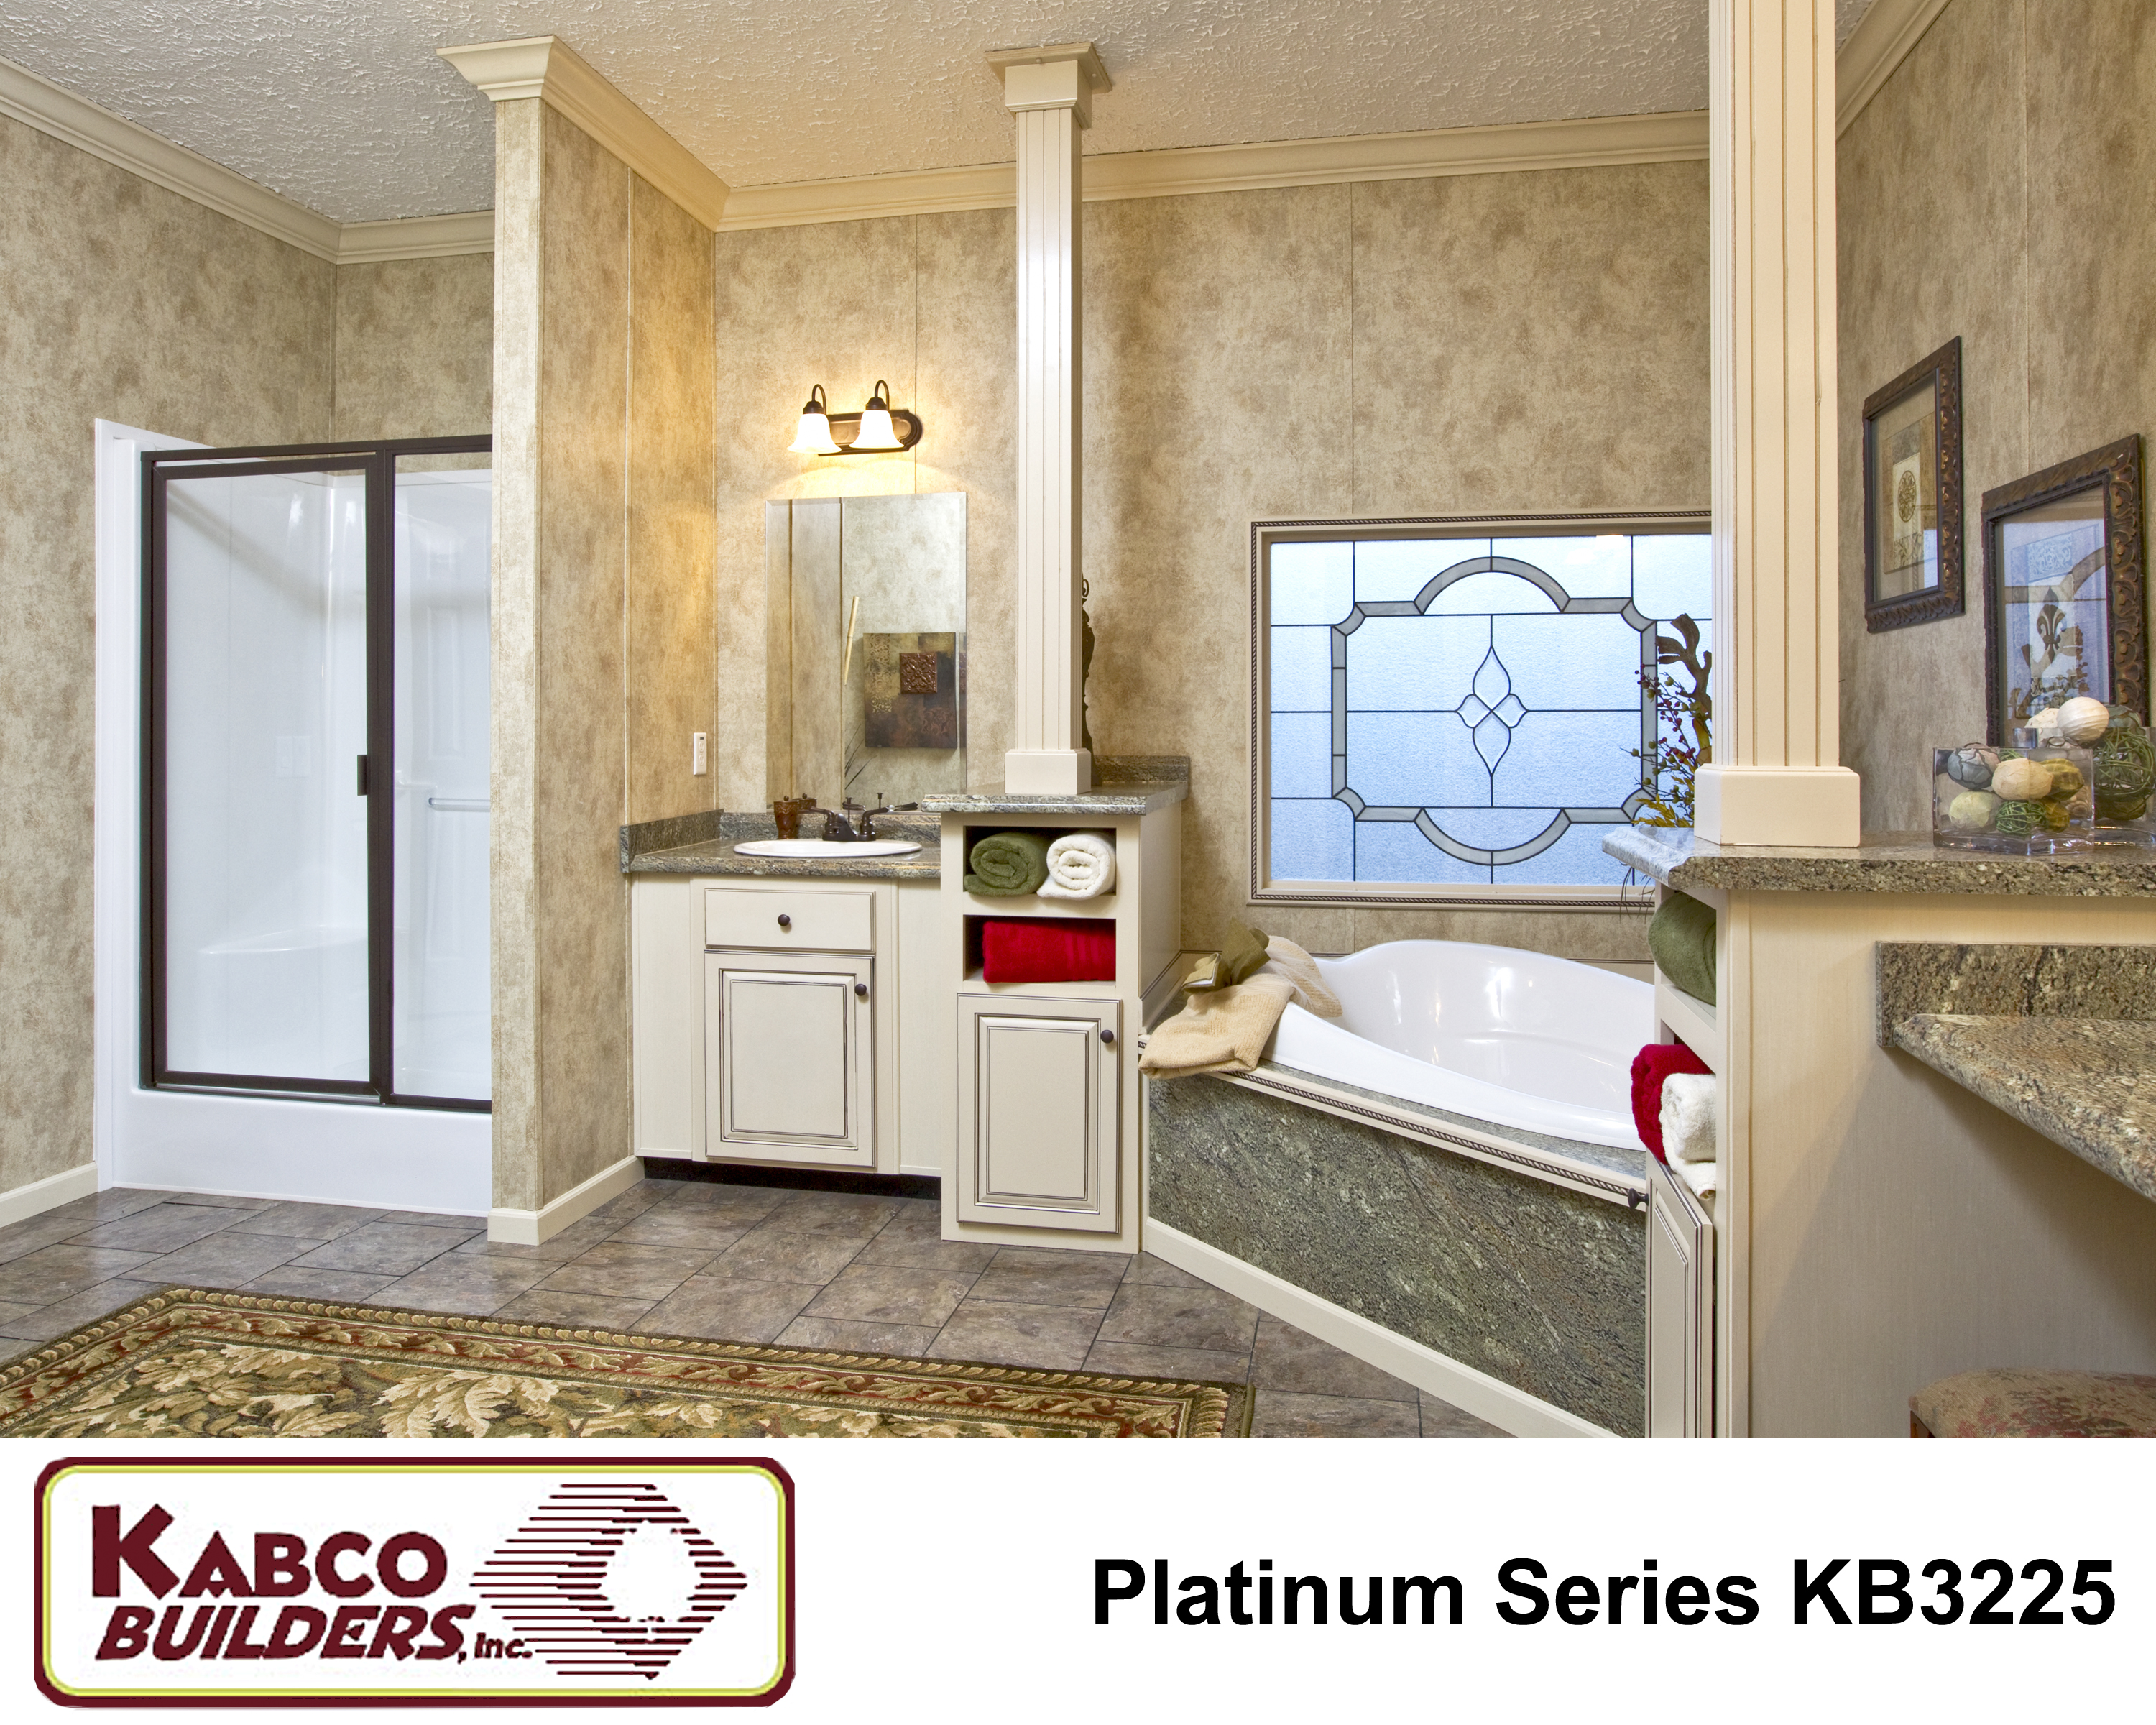 kitchen faucets white dish towels kb-3225 | kabco builders